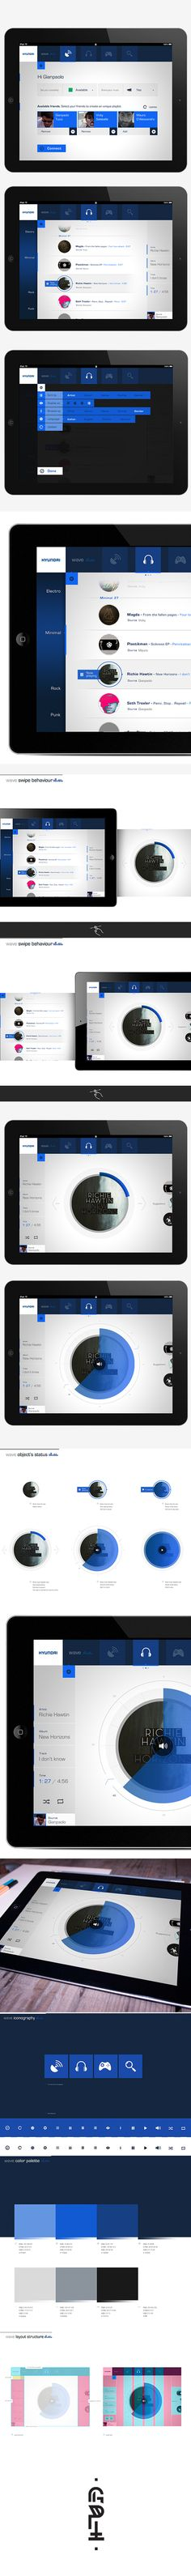 Nice flat design example: wave App #UI  -  iPad application design by Gianpaolo Tucci, via Behance